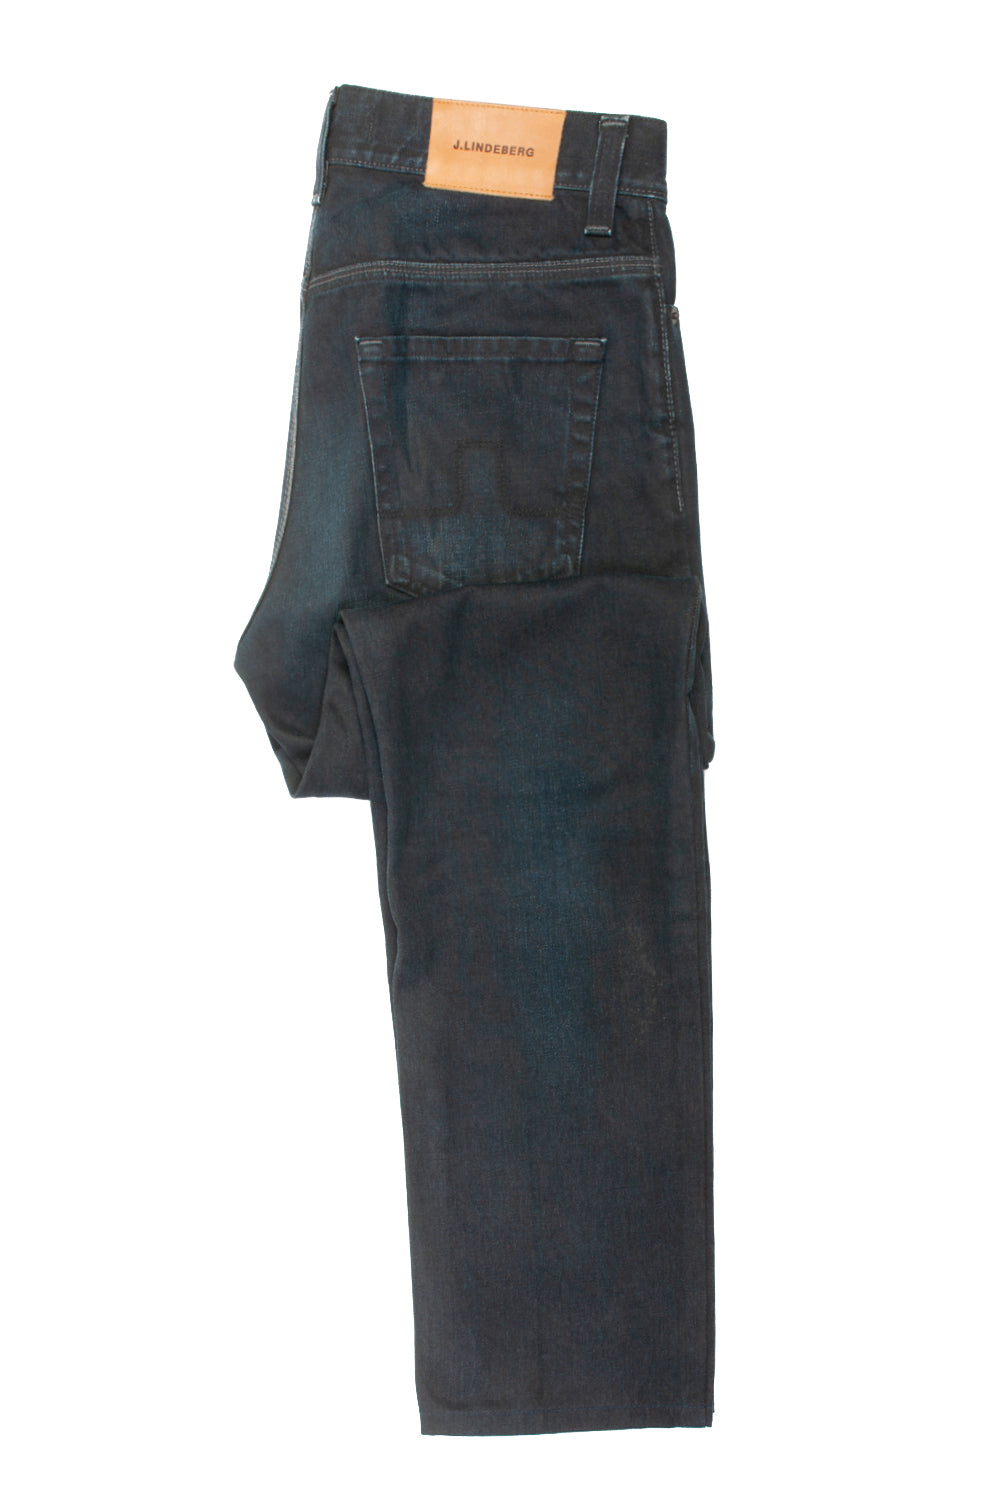 J.Lindeberg Lennon 2429 Ink Denim Jeans for Luxmrkt.com Menswear Consignment Edmonton